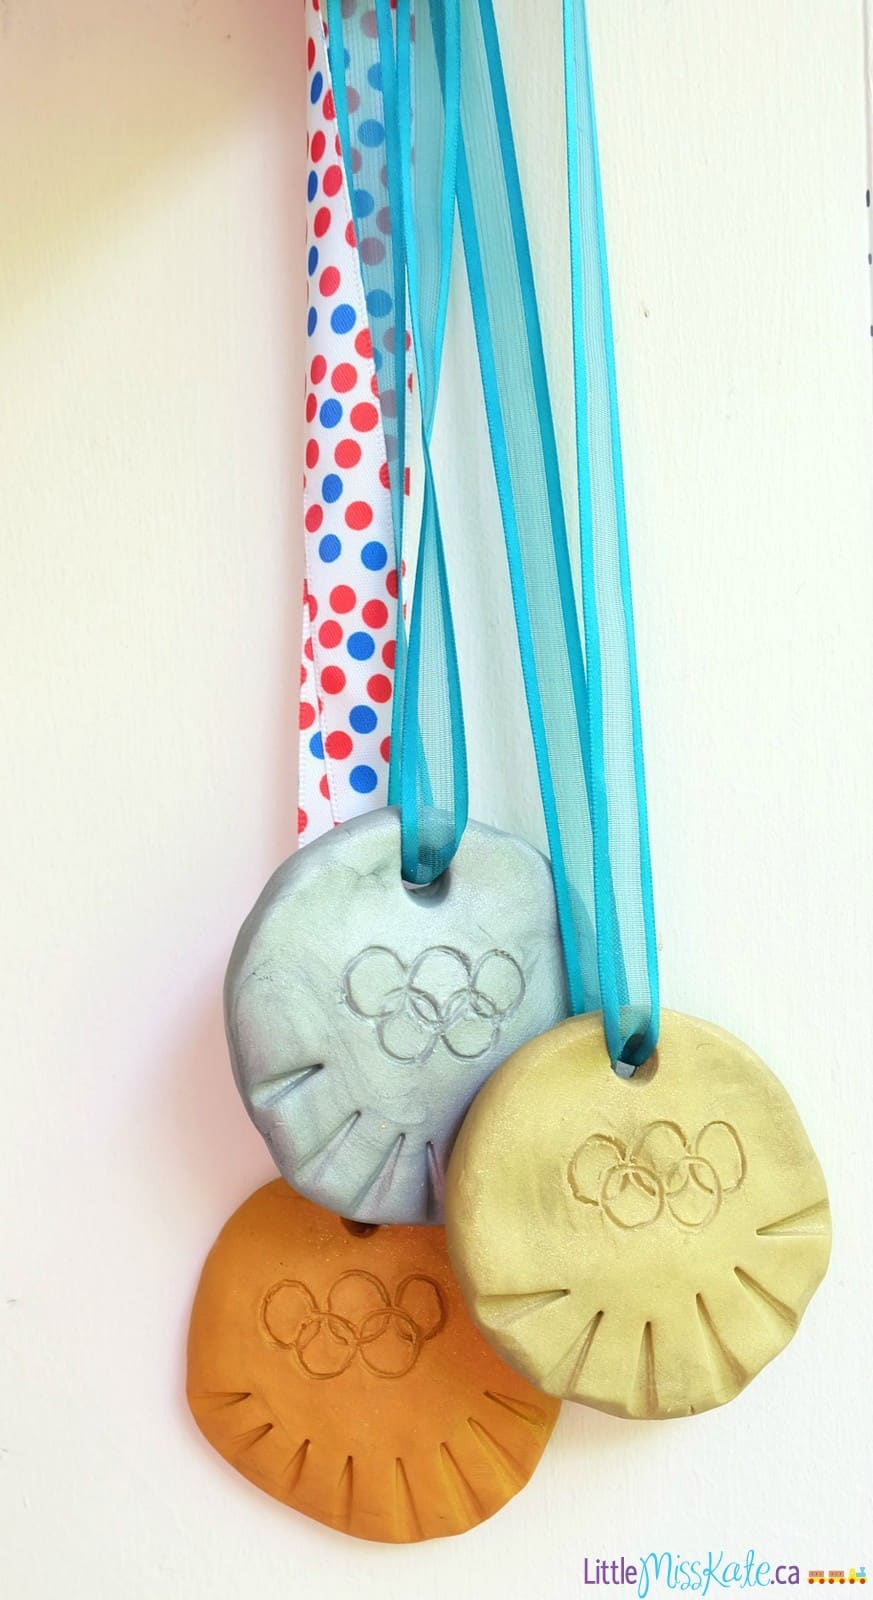 Olympic crafts for kids DIY olympic medals